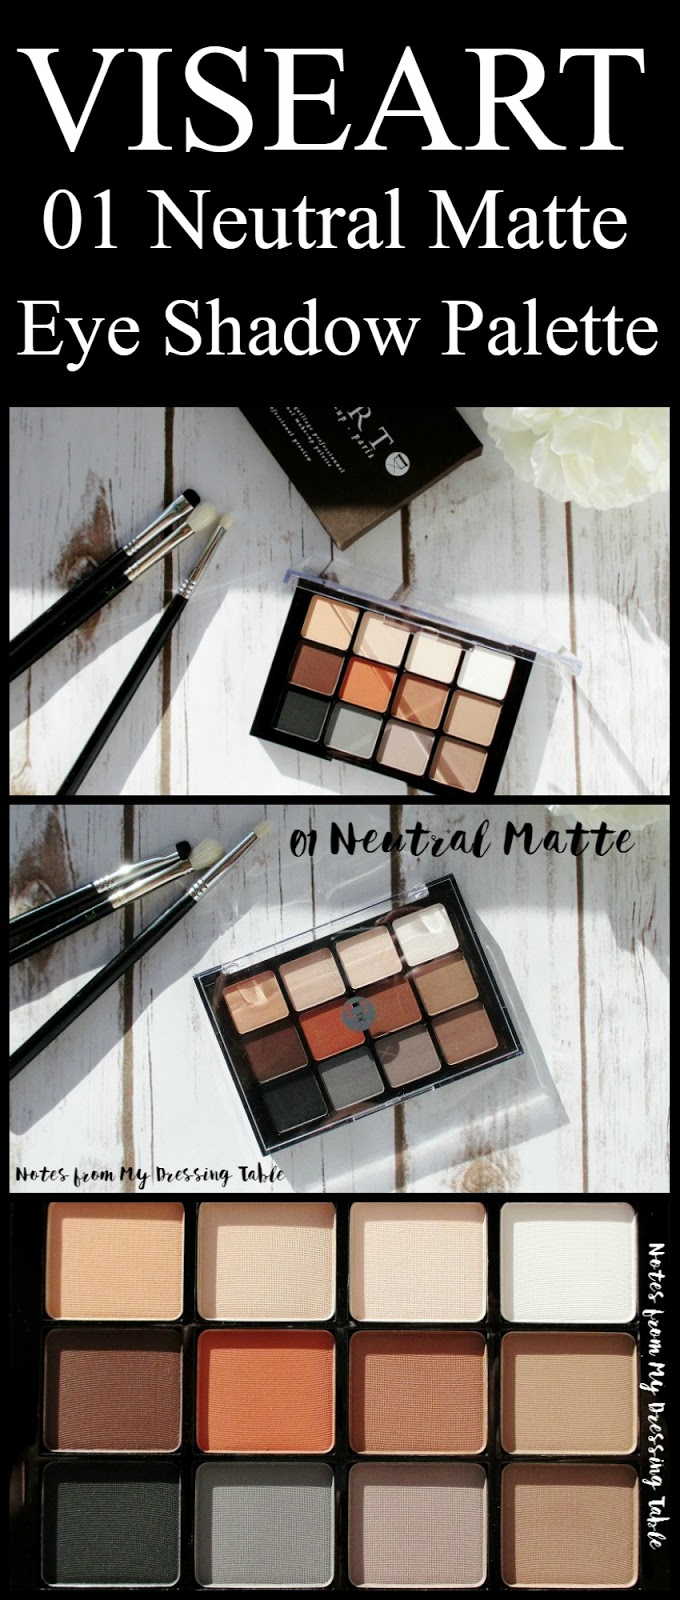 Viseart Neutral Matte Eye Shadow Palette | My Notes Notes from My Dressing Table